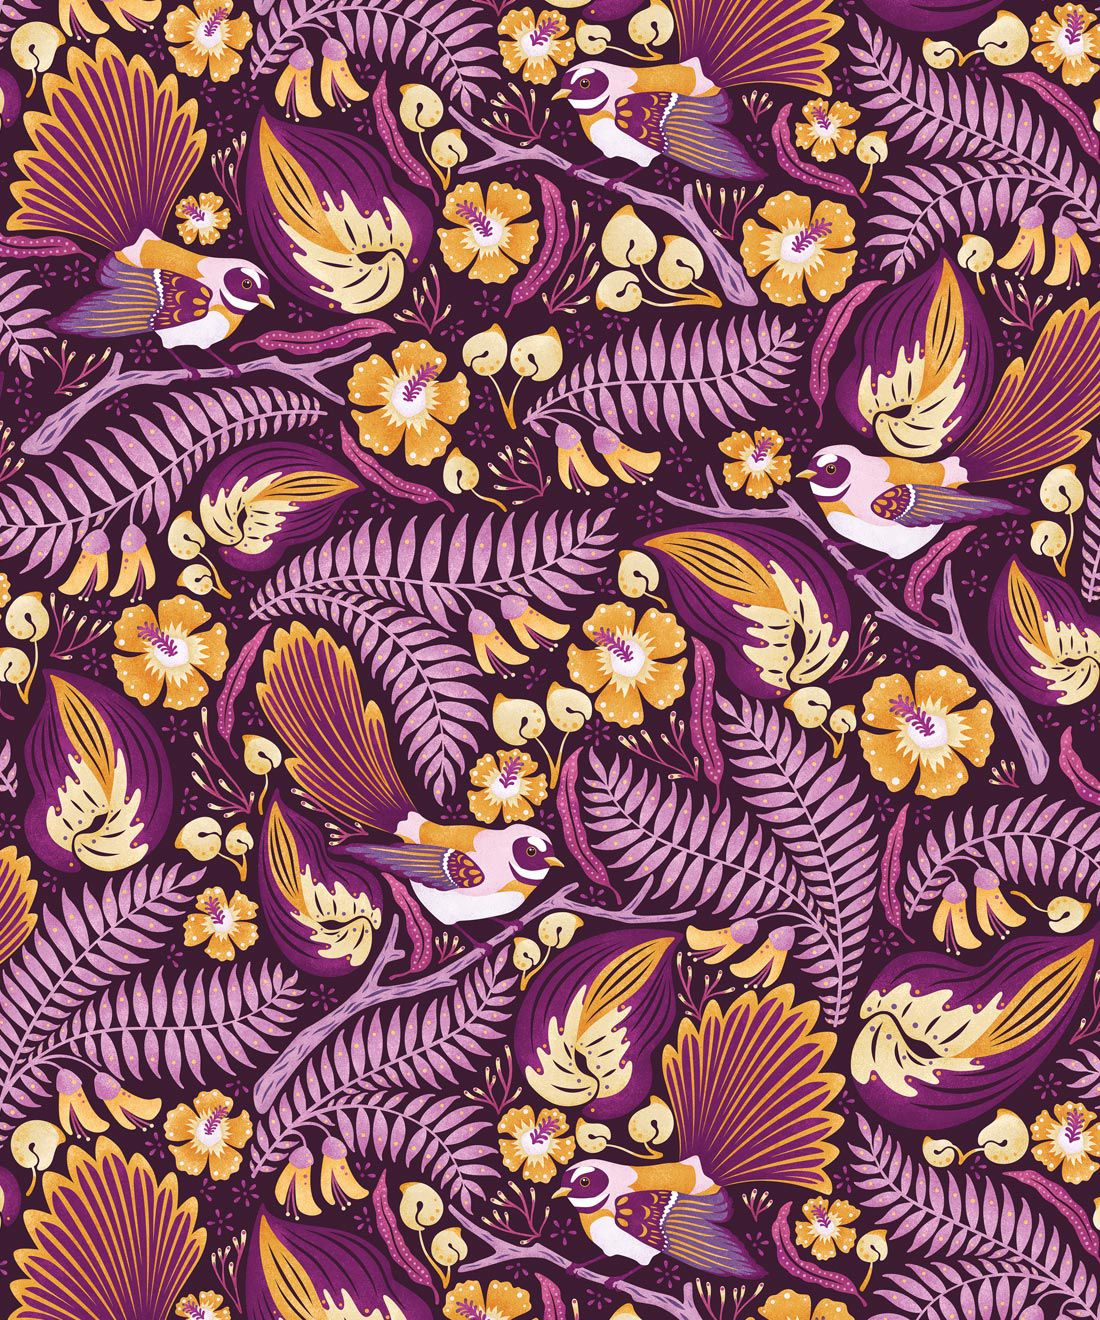 Faintails Wallpaper • New Zealand • Bird Wallpaper • Kowhai Tree • Kowhai Flowers • Purple Wallpaper •Swatch